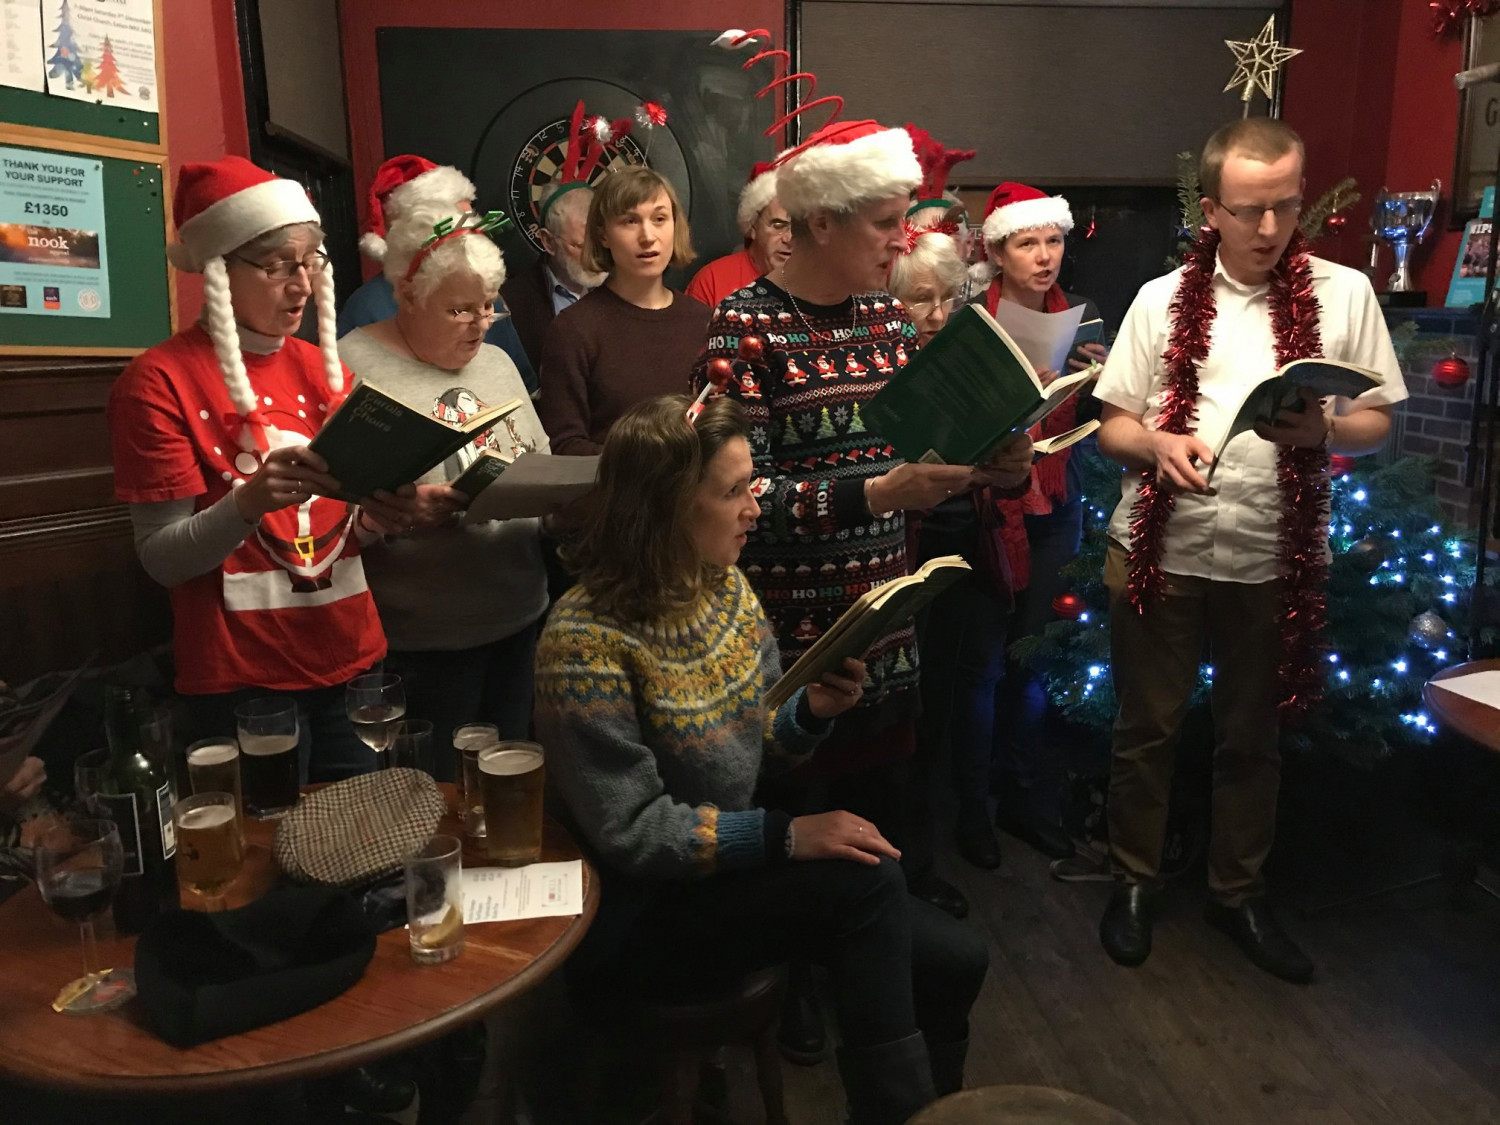 Christ Church choir lead carol singing at The Beehive